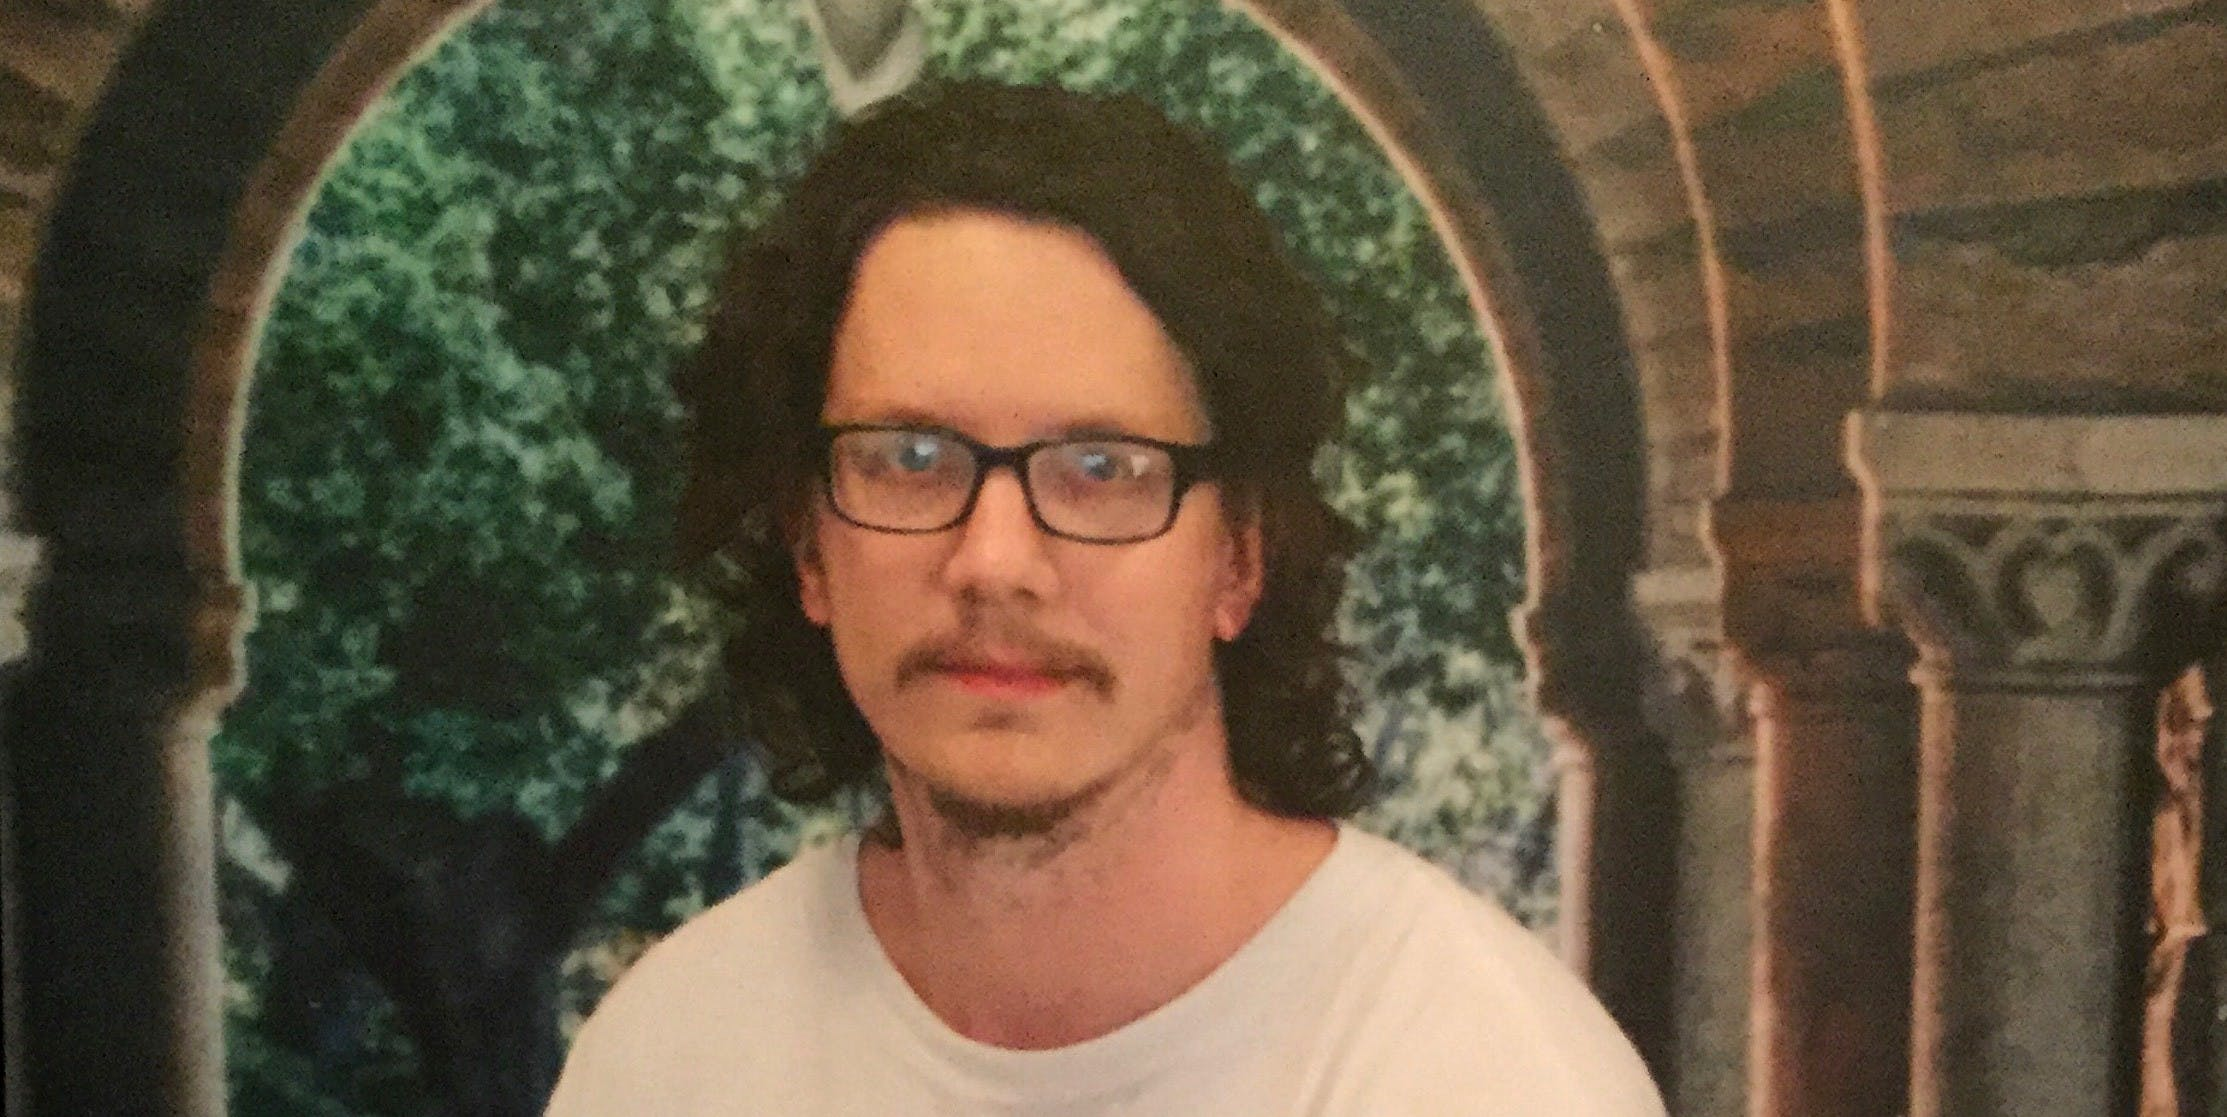 Imprisoned Hacktivist Jeremy Hammond Bumped a Guard With a Door — and Got Thrown in Solitary Confinement